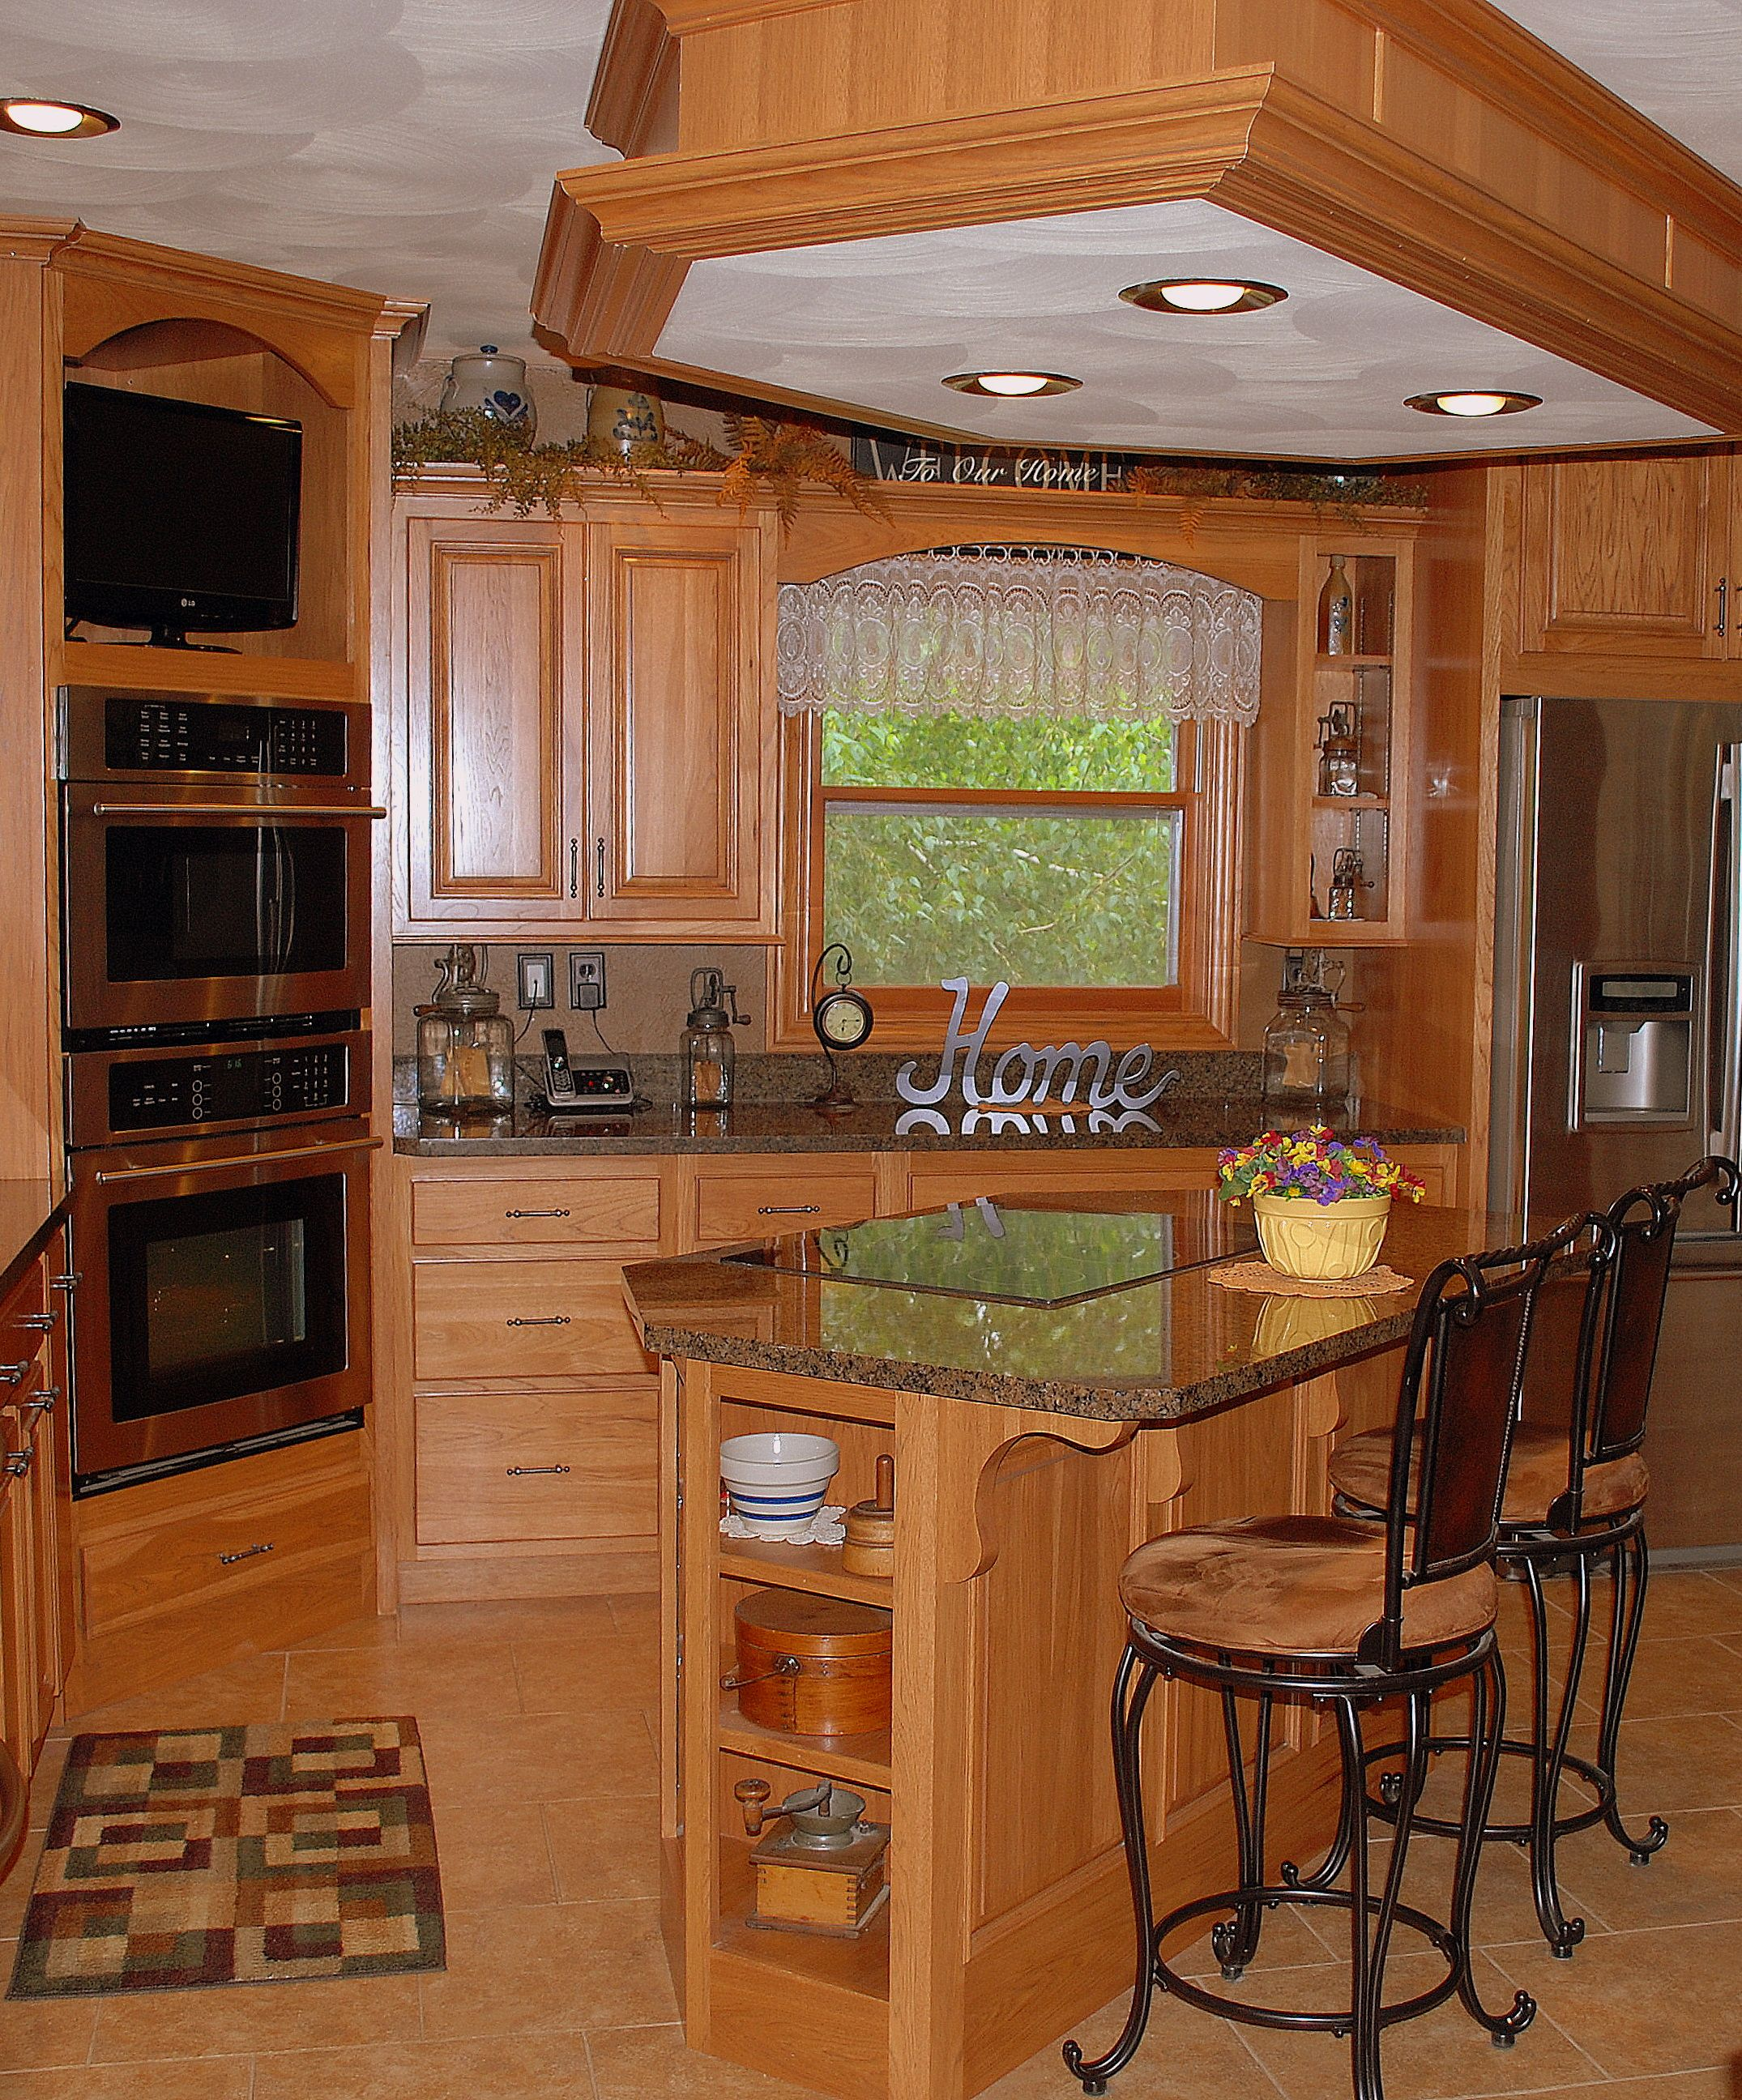 Hickory Cabinetry From Forever Cabinets By Kendrick. Www.forevercabinets.com